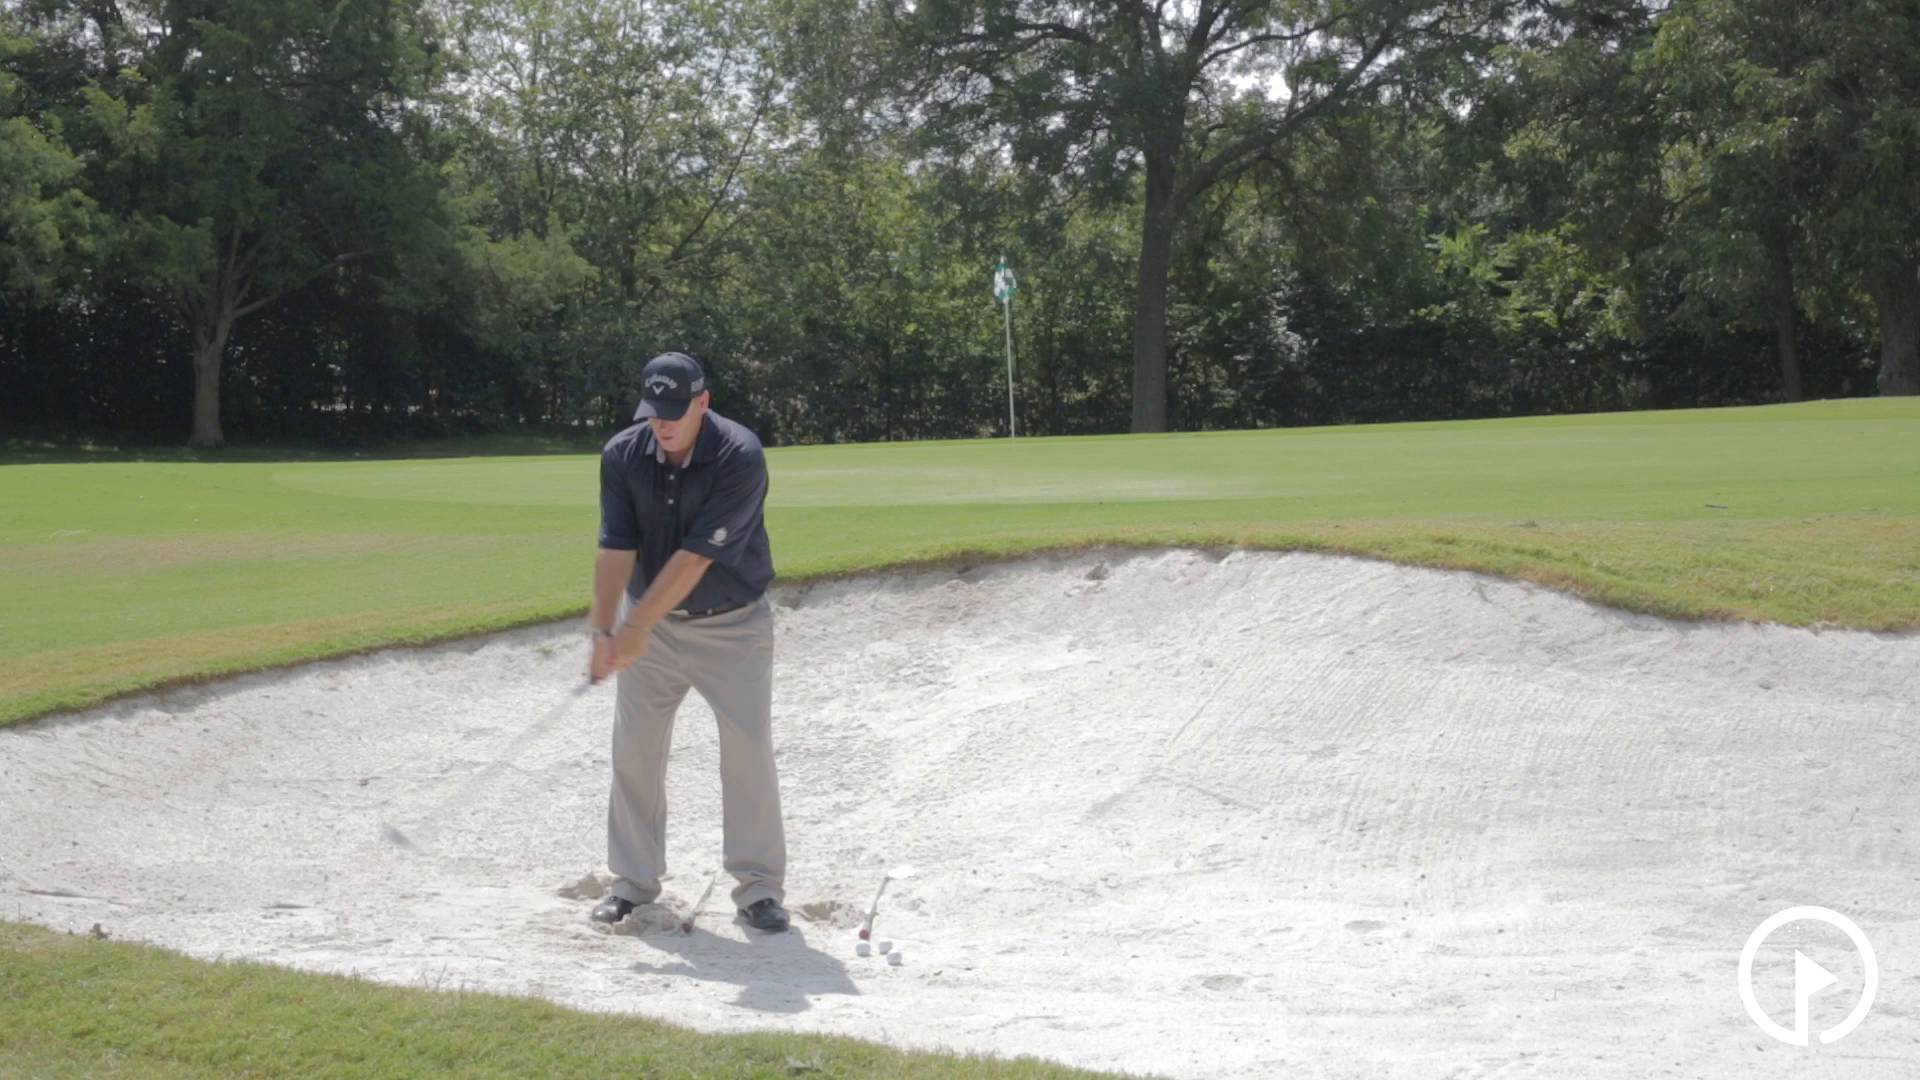 Bunker Basics - How to Get Out of the Sand